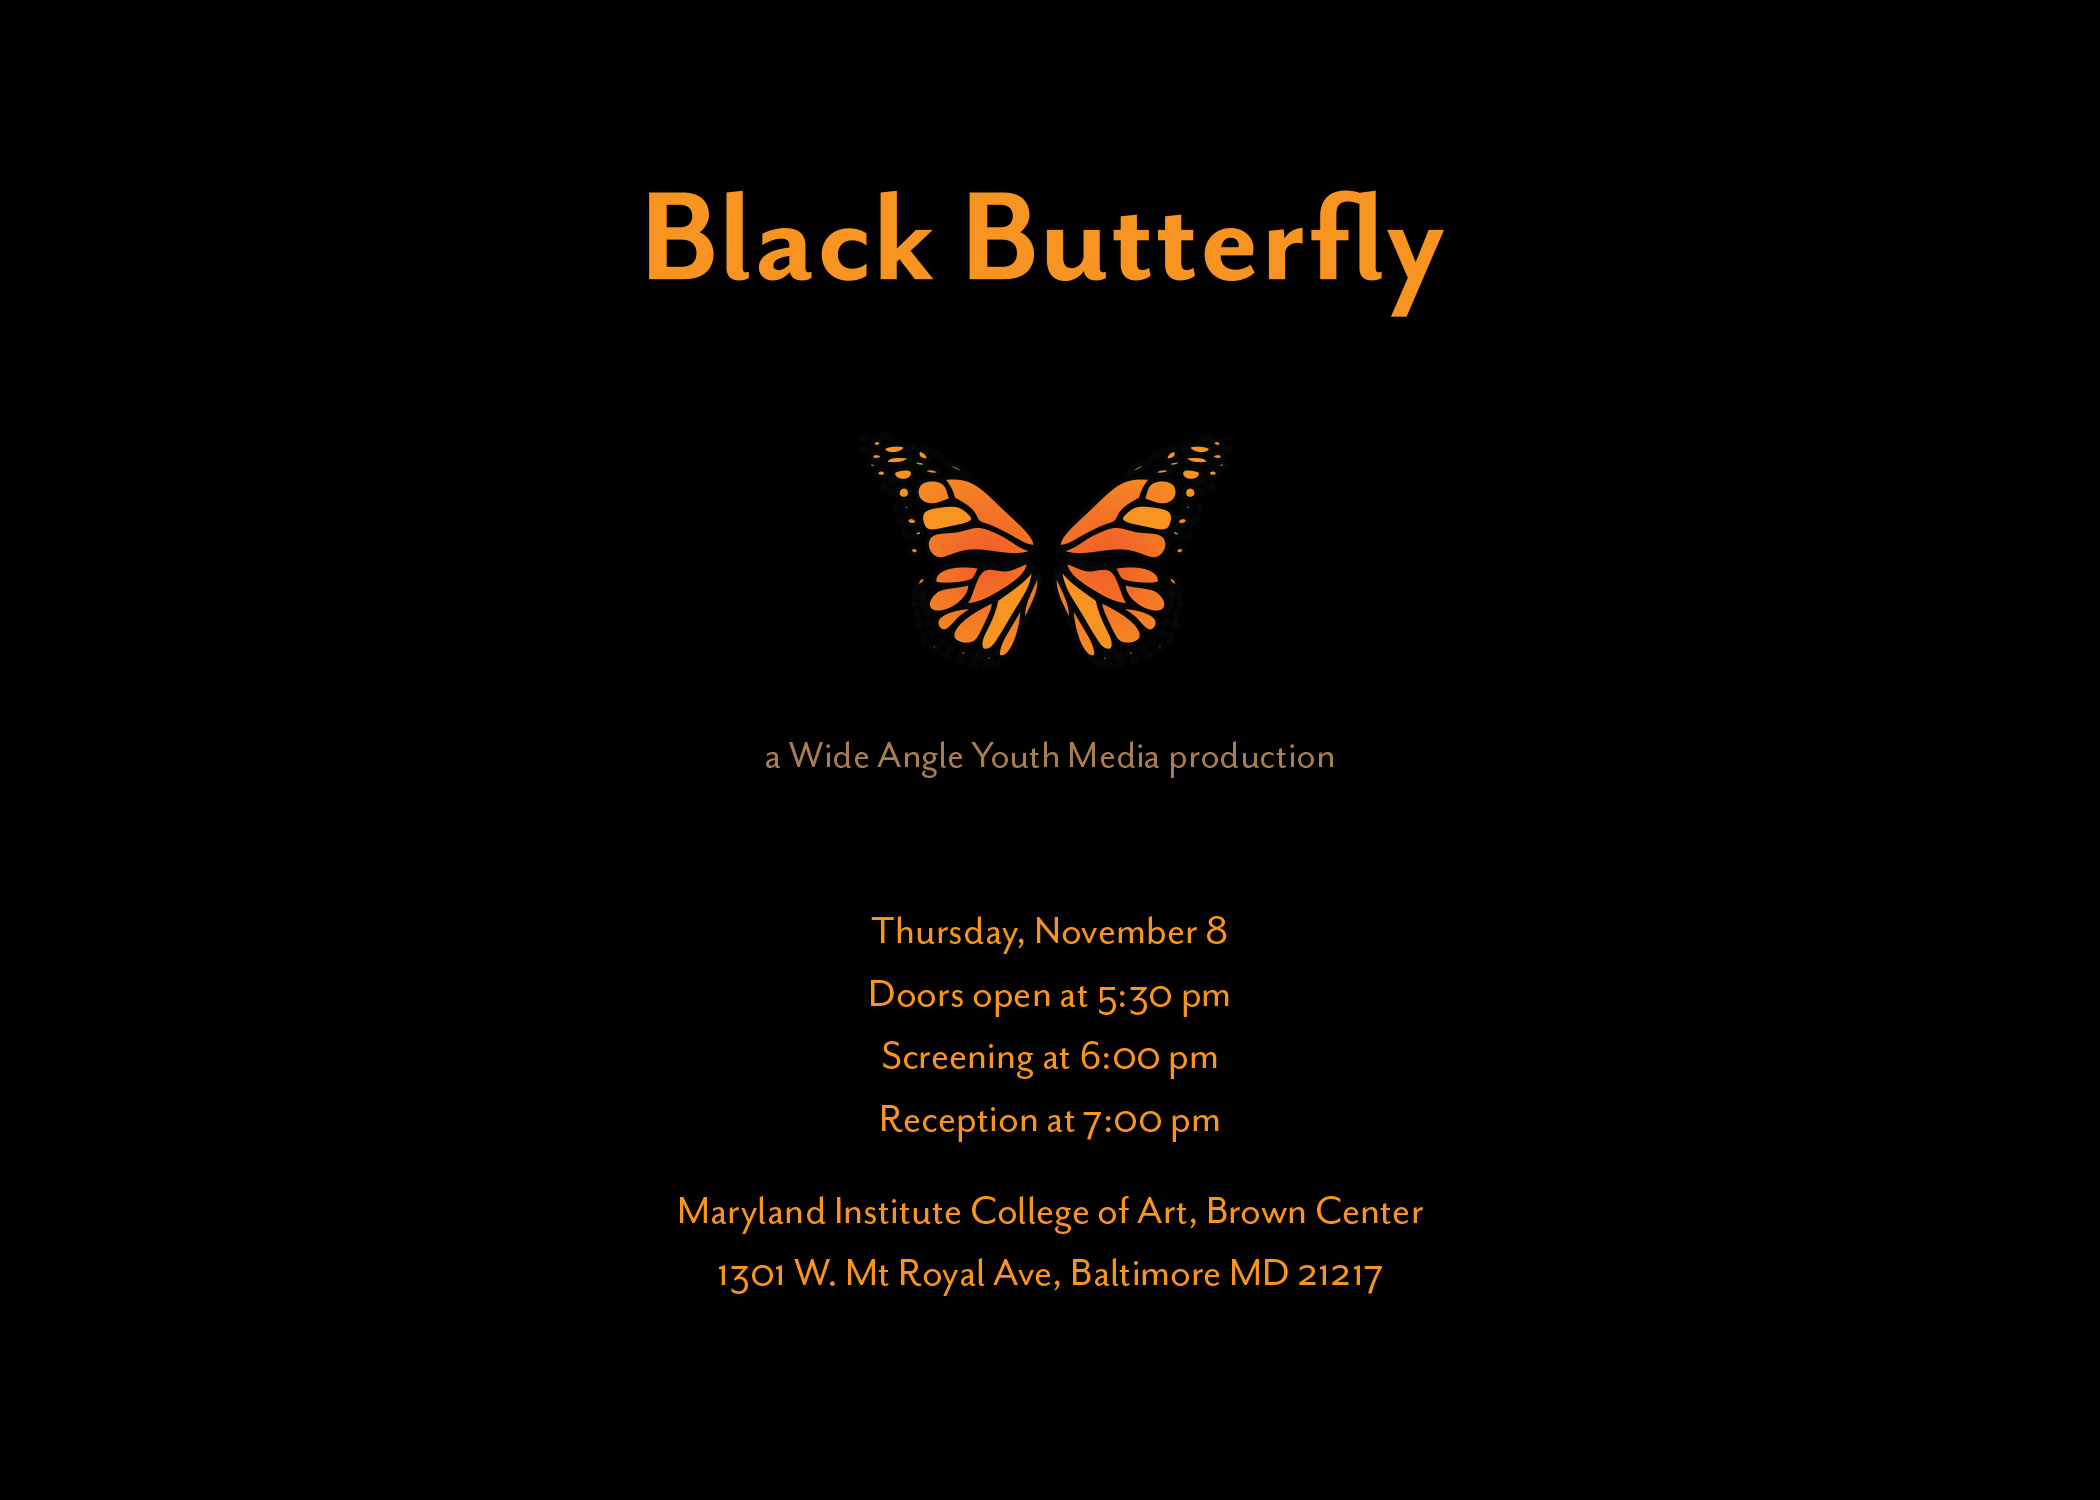 black butterfly invite update.jpg